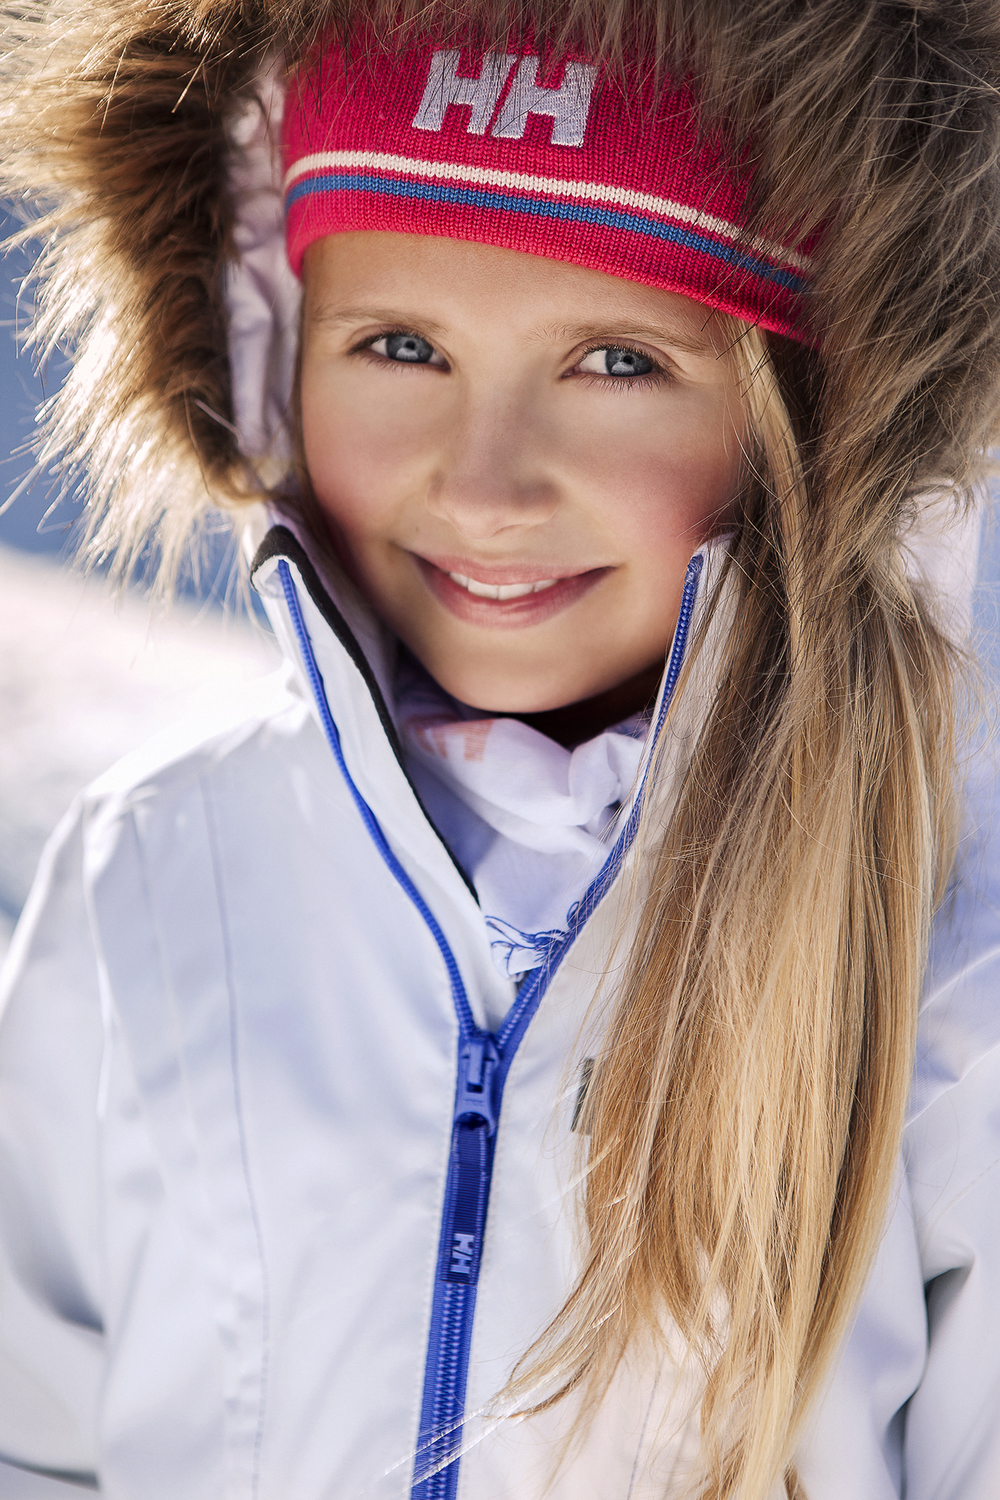 Helly Hansen Kids Photo Cato Aurtun 006.jpg